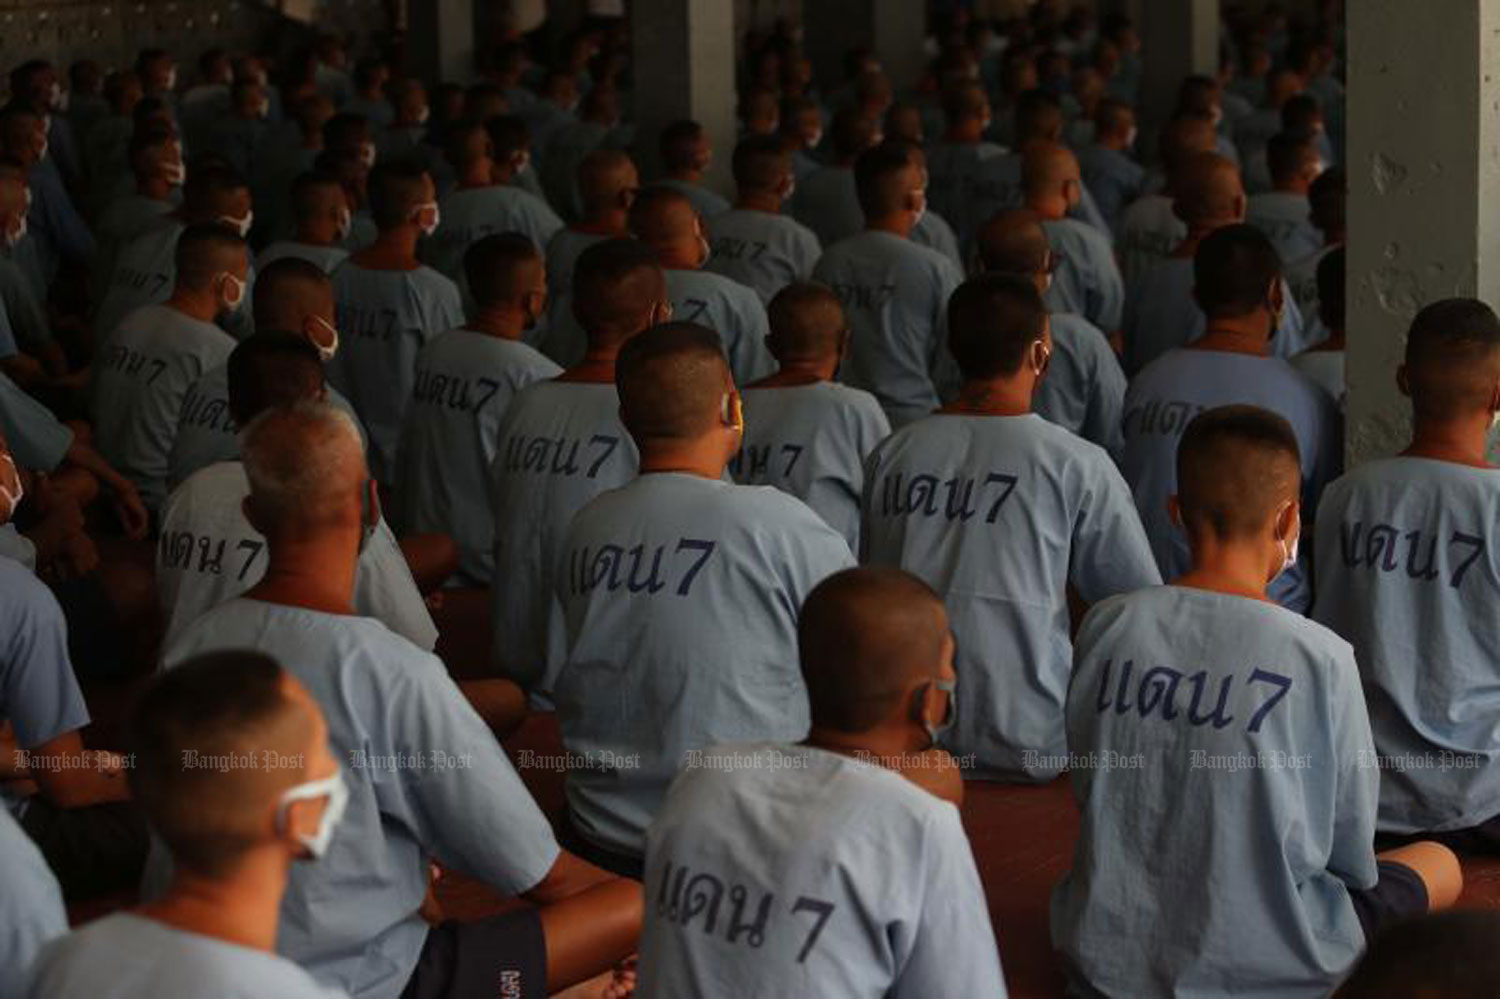 Inmates at the Central Correctional Institute for Drug Addicts attend an occupational training session on Aug 13 last year. (Bangkok Post file photo)